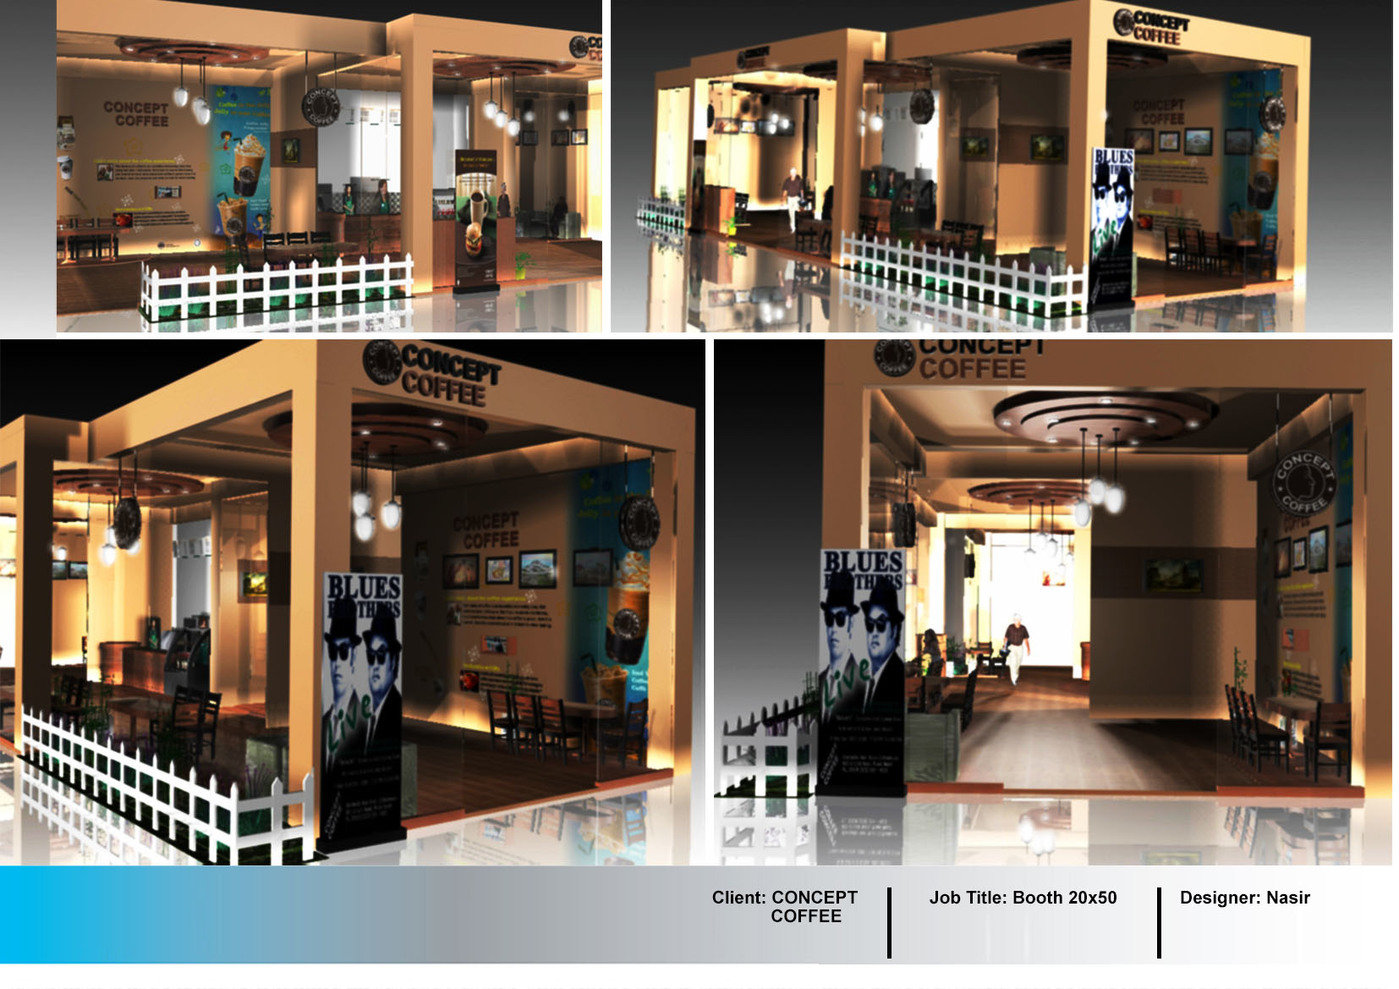 Exhibition Booth Layout Design : Booth design by nasir uddin at coroflot